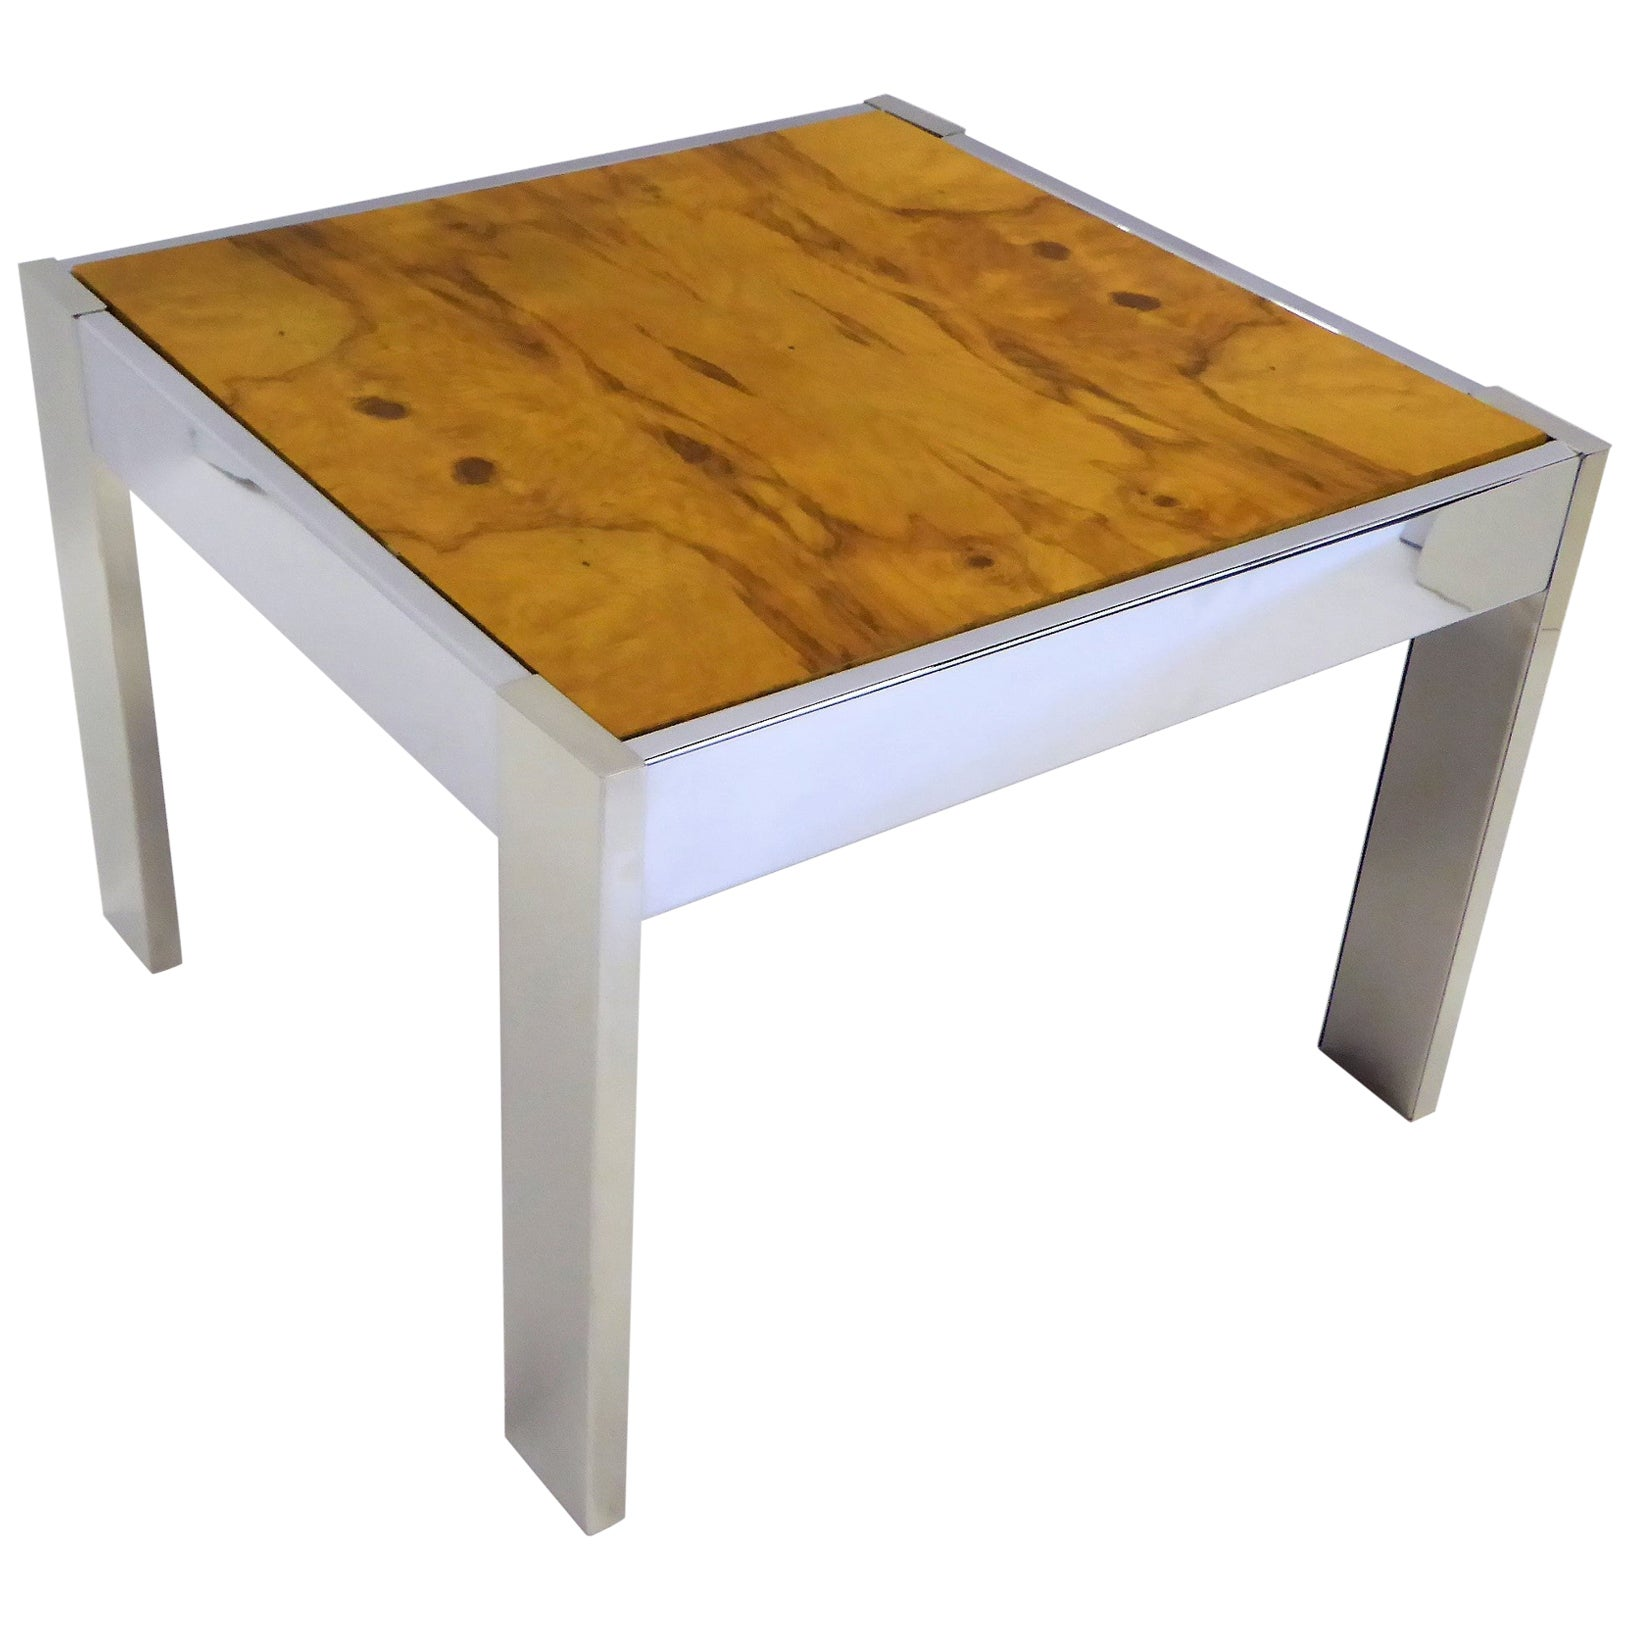 1970s Modern Chrome and Burl Wood Side Table in the Style of Milo Baughman